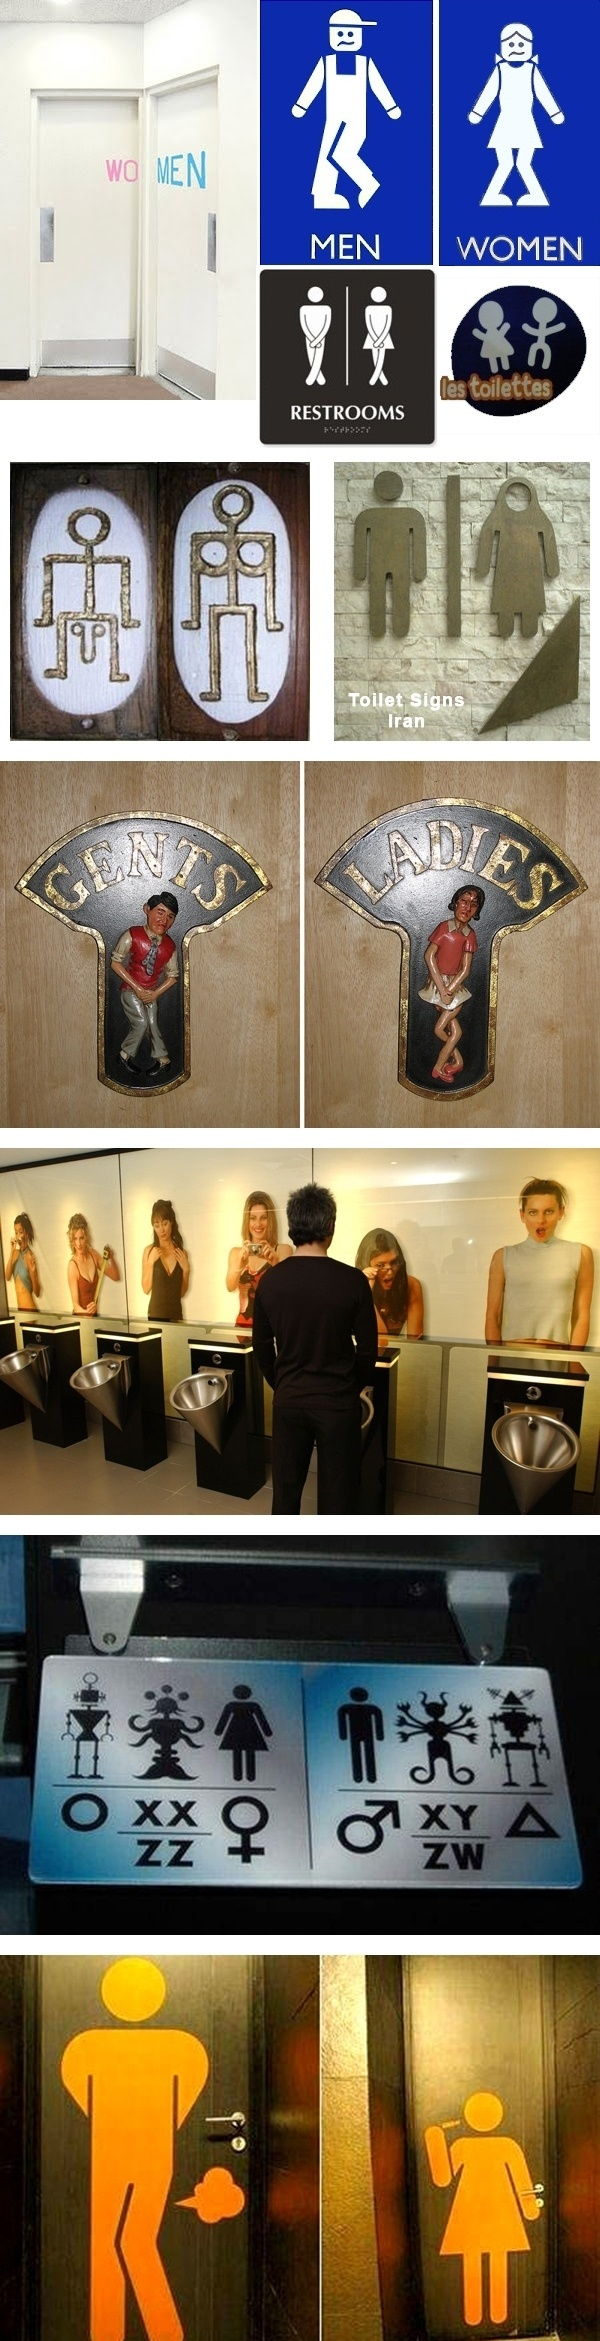 Funny & Creative Toilet Signs